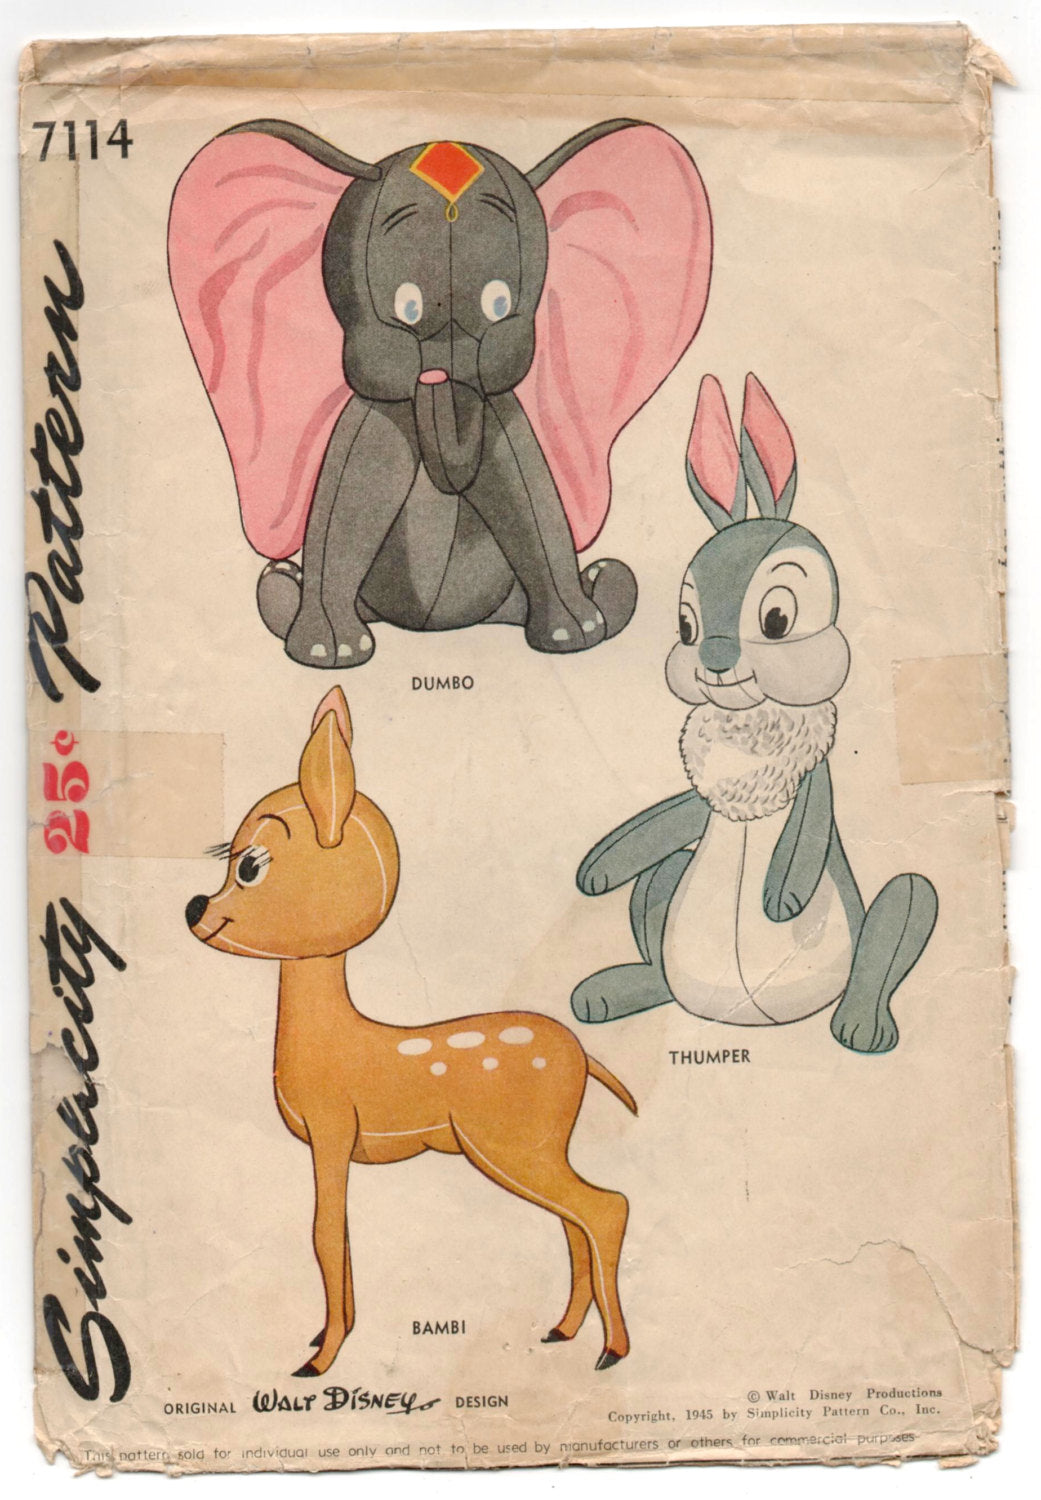 1940's Simplicity Dumbo, Bambi and Thumper Stuffed Animal Pattern - No. 7114